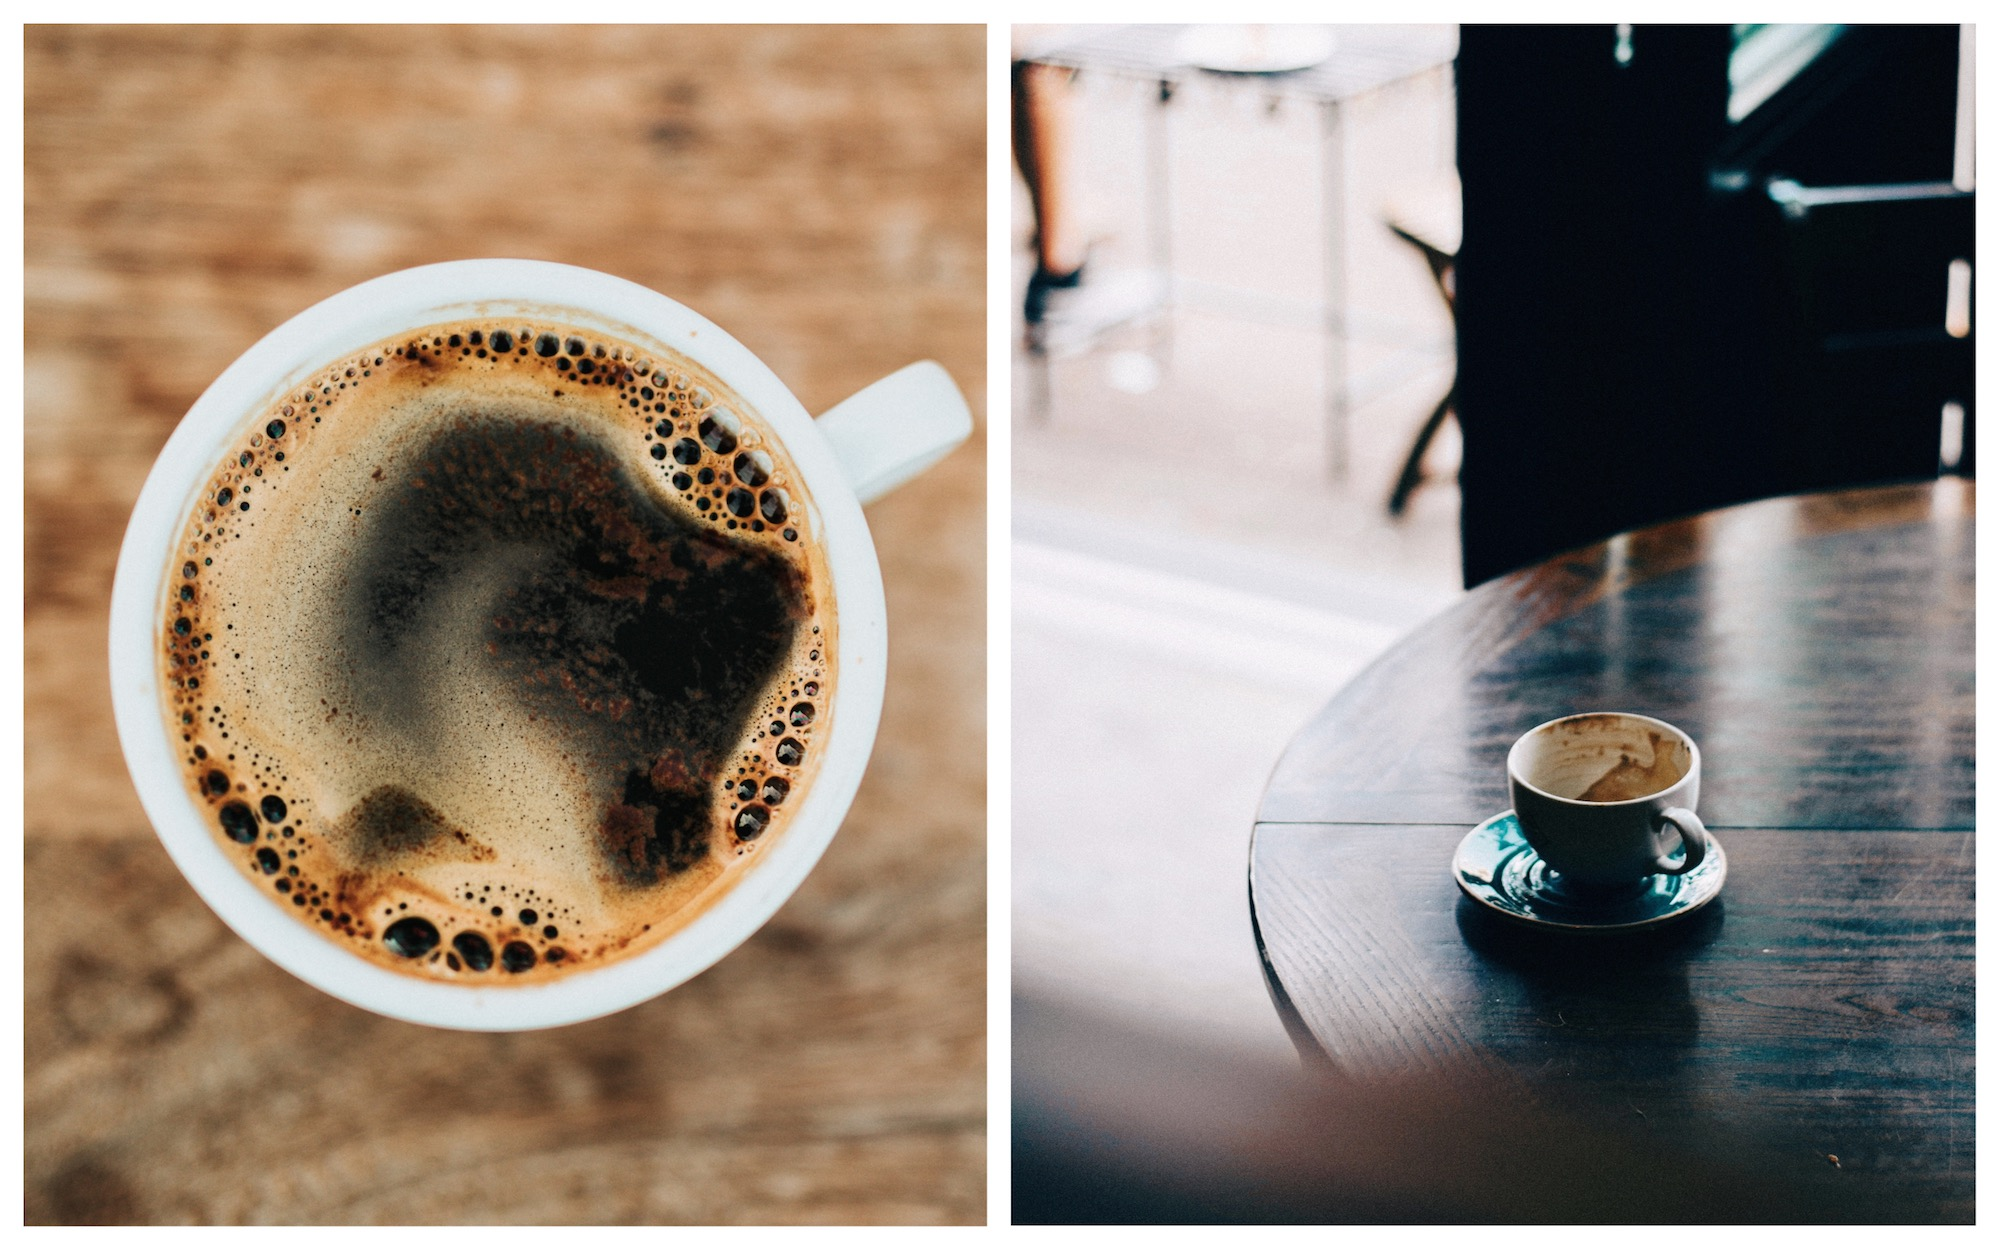 HiP Paris Blog explores the difference between French and Italian coffee culture